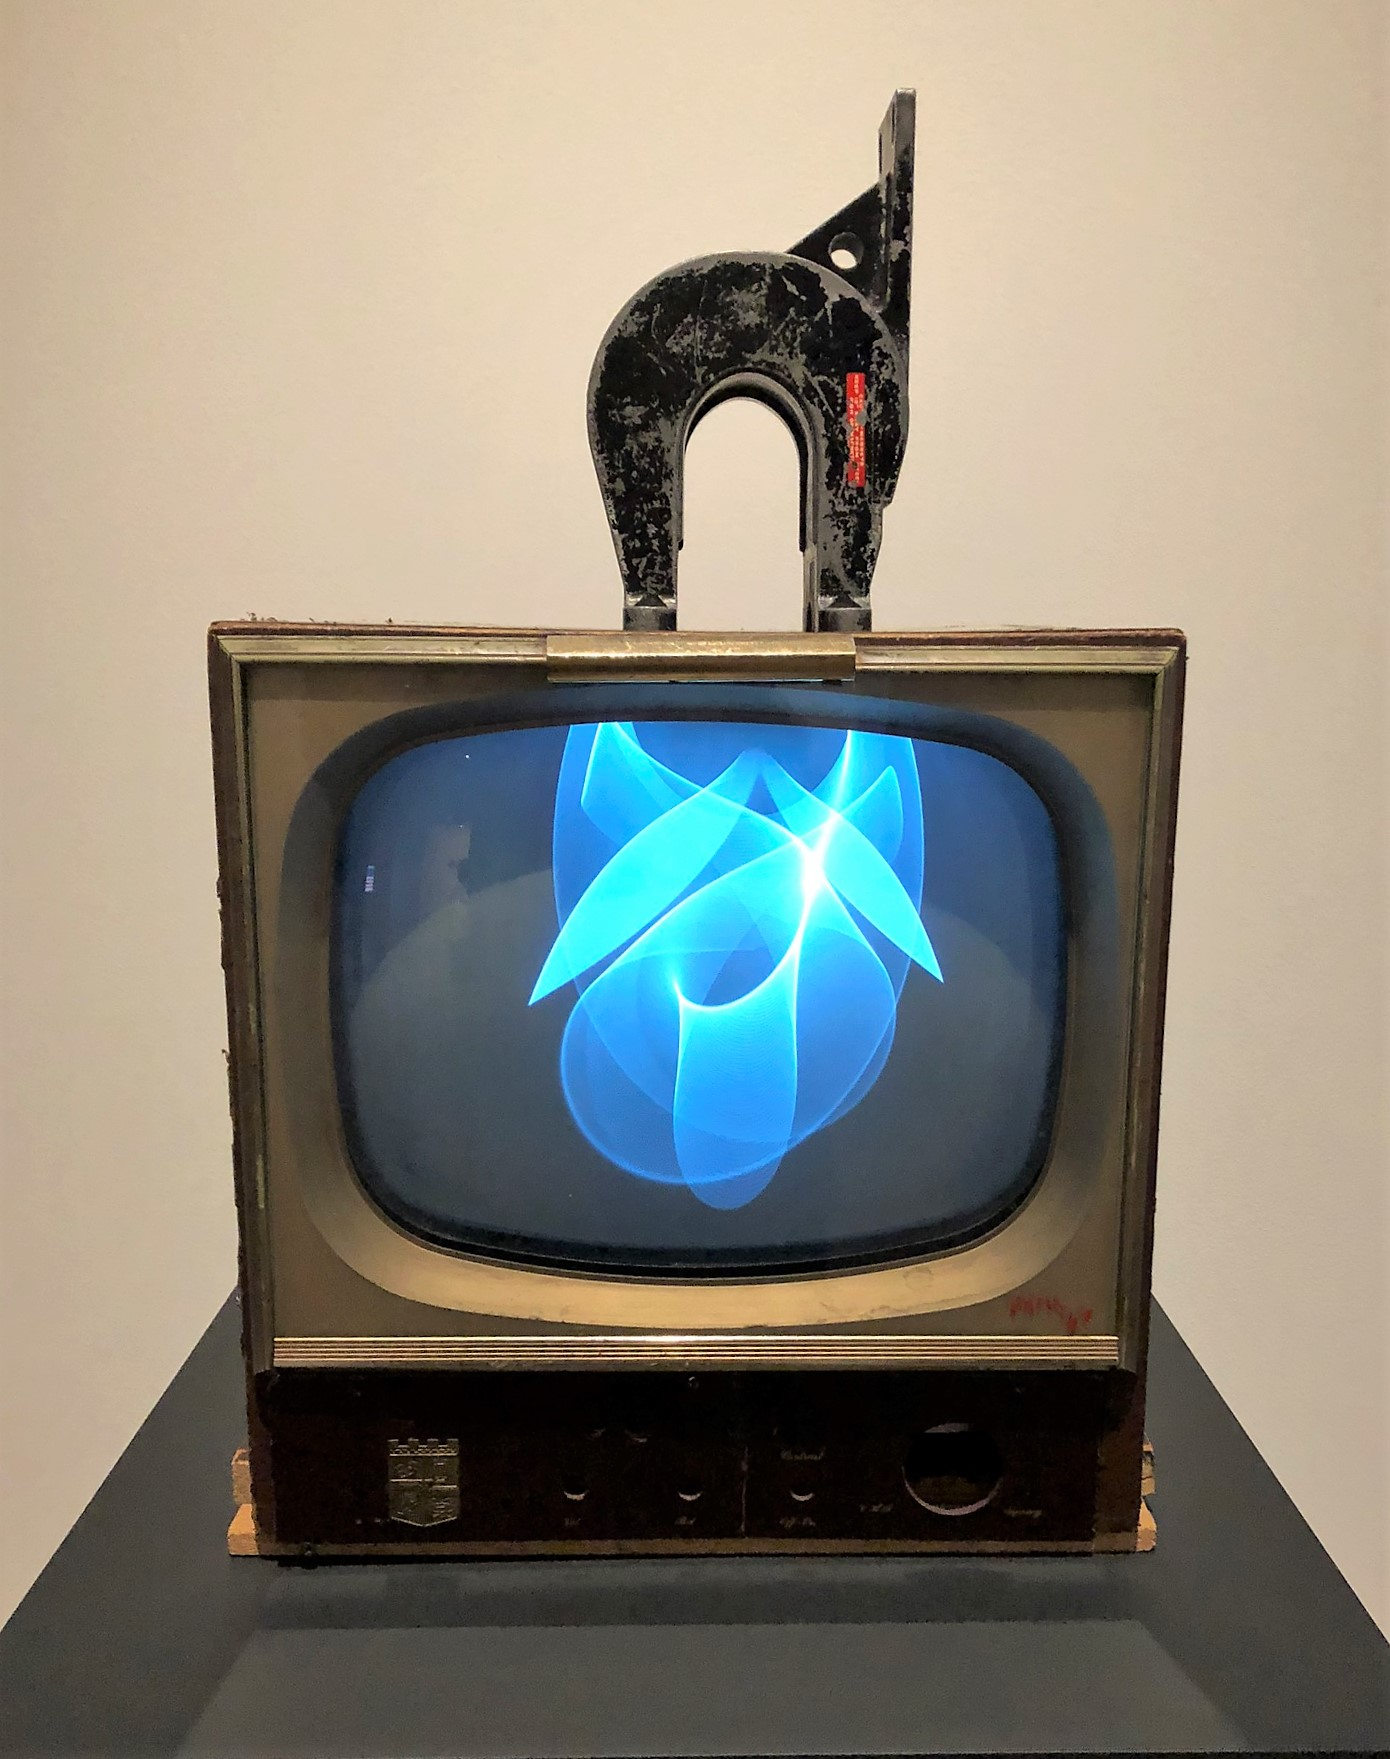 Magnet TV, Nam June Paik